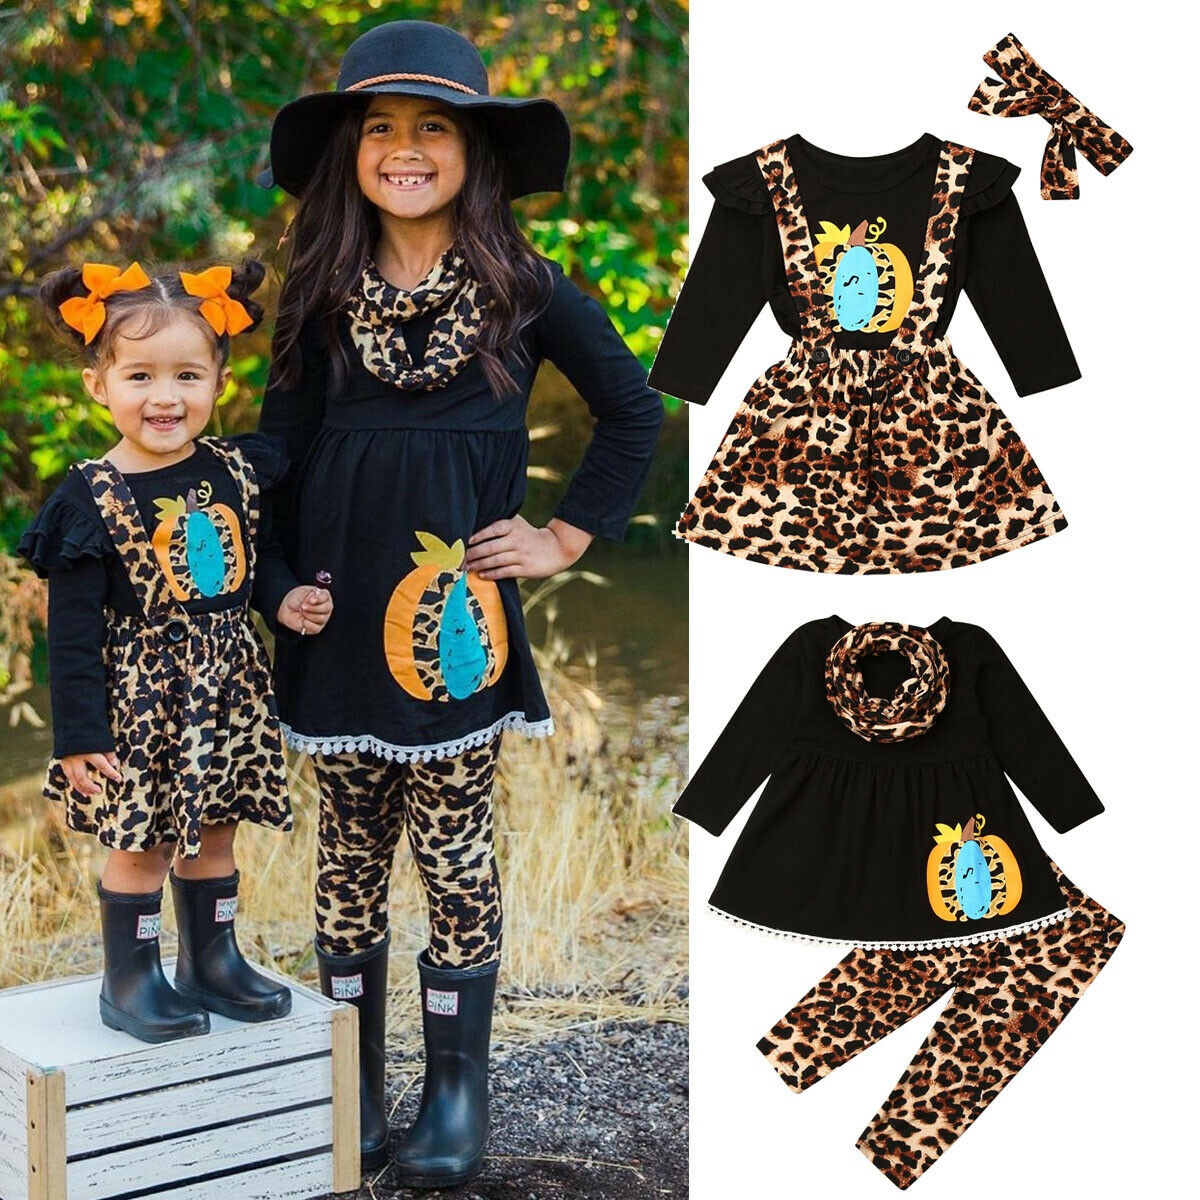 2PCS Toddler Kids Baby Girls Outfit Long Sleeve Ruffle Lace T-Shirt+Suspender Skirt Overalls Set